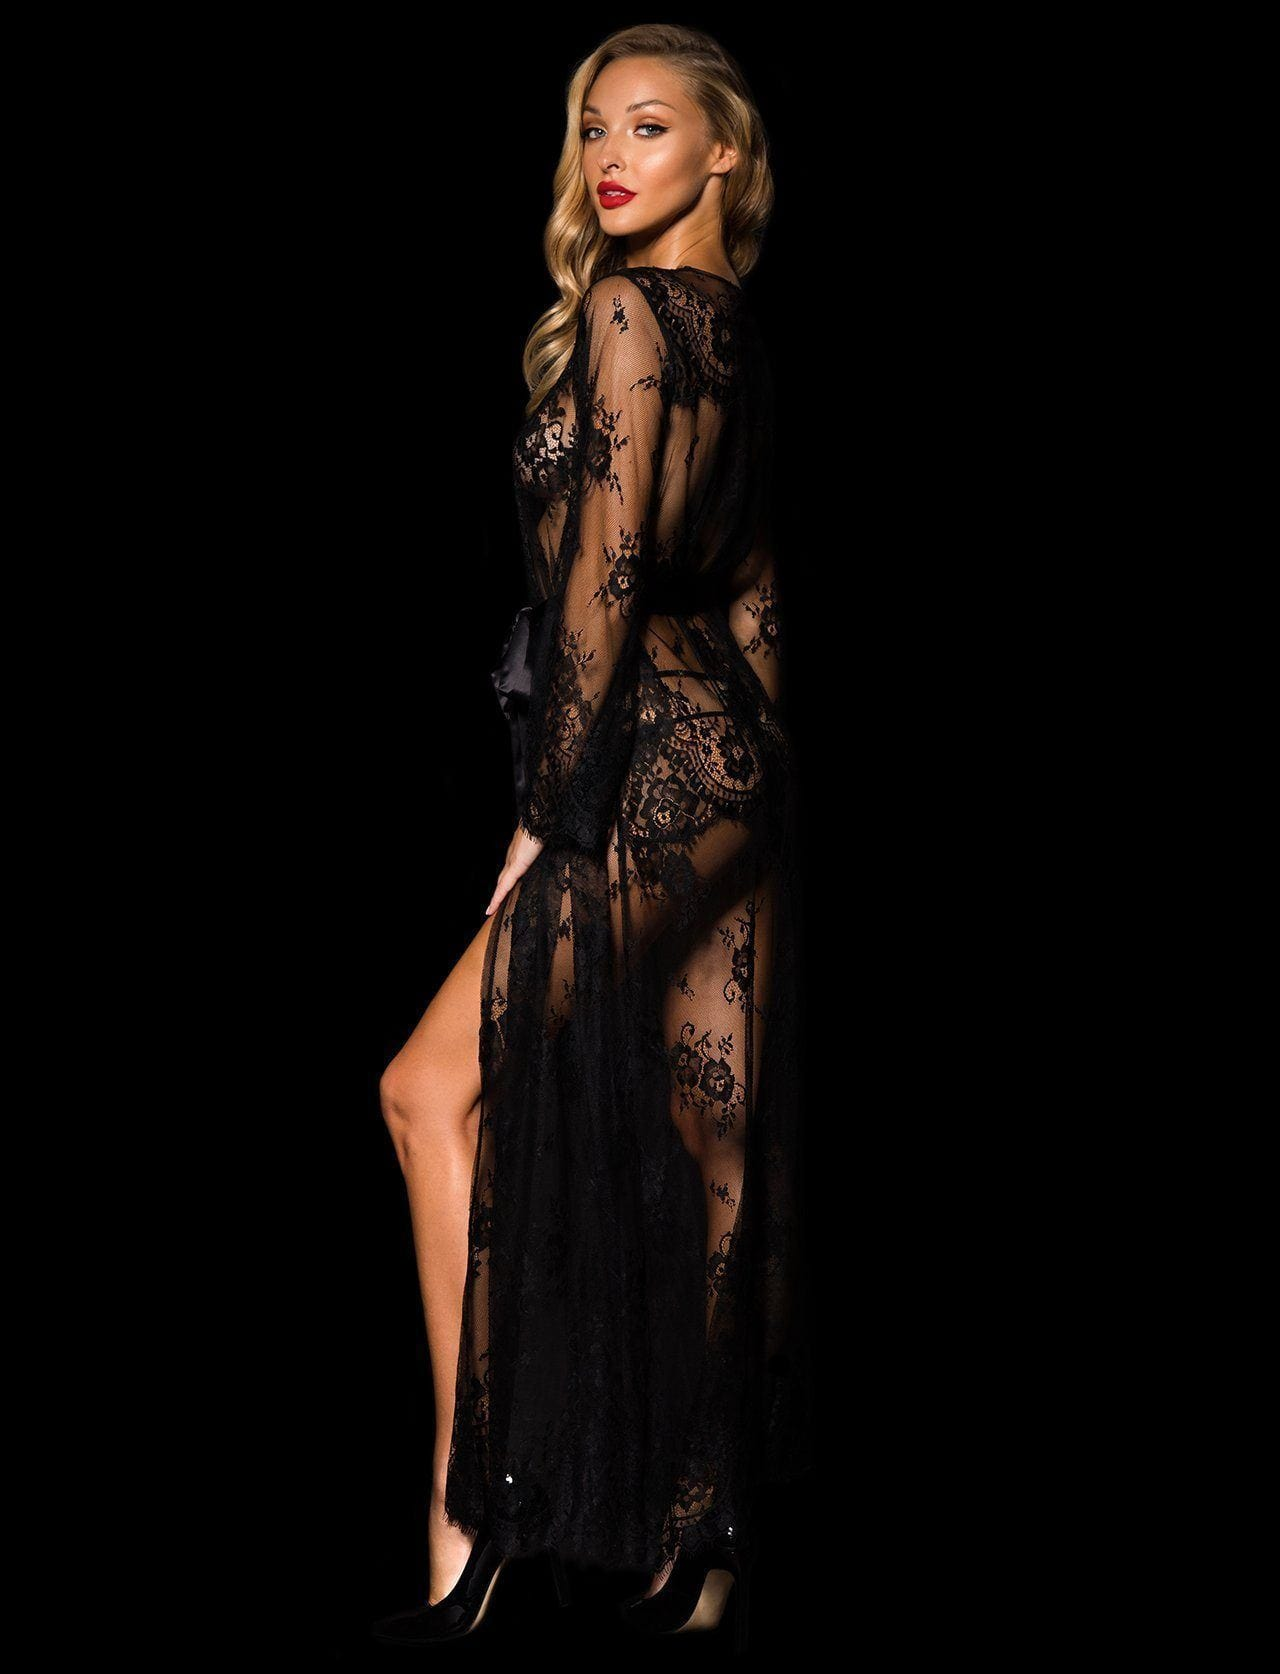 Love Lace Full Length Robe - Shop Robe | Honey Birdette UK